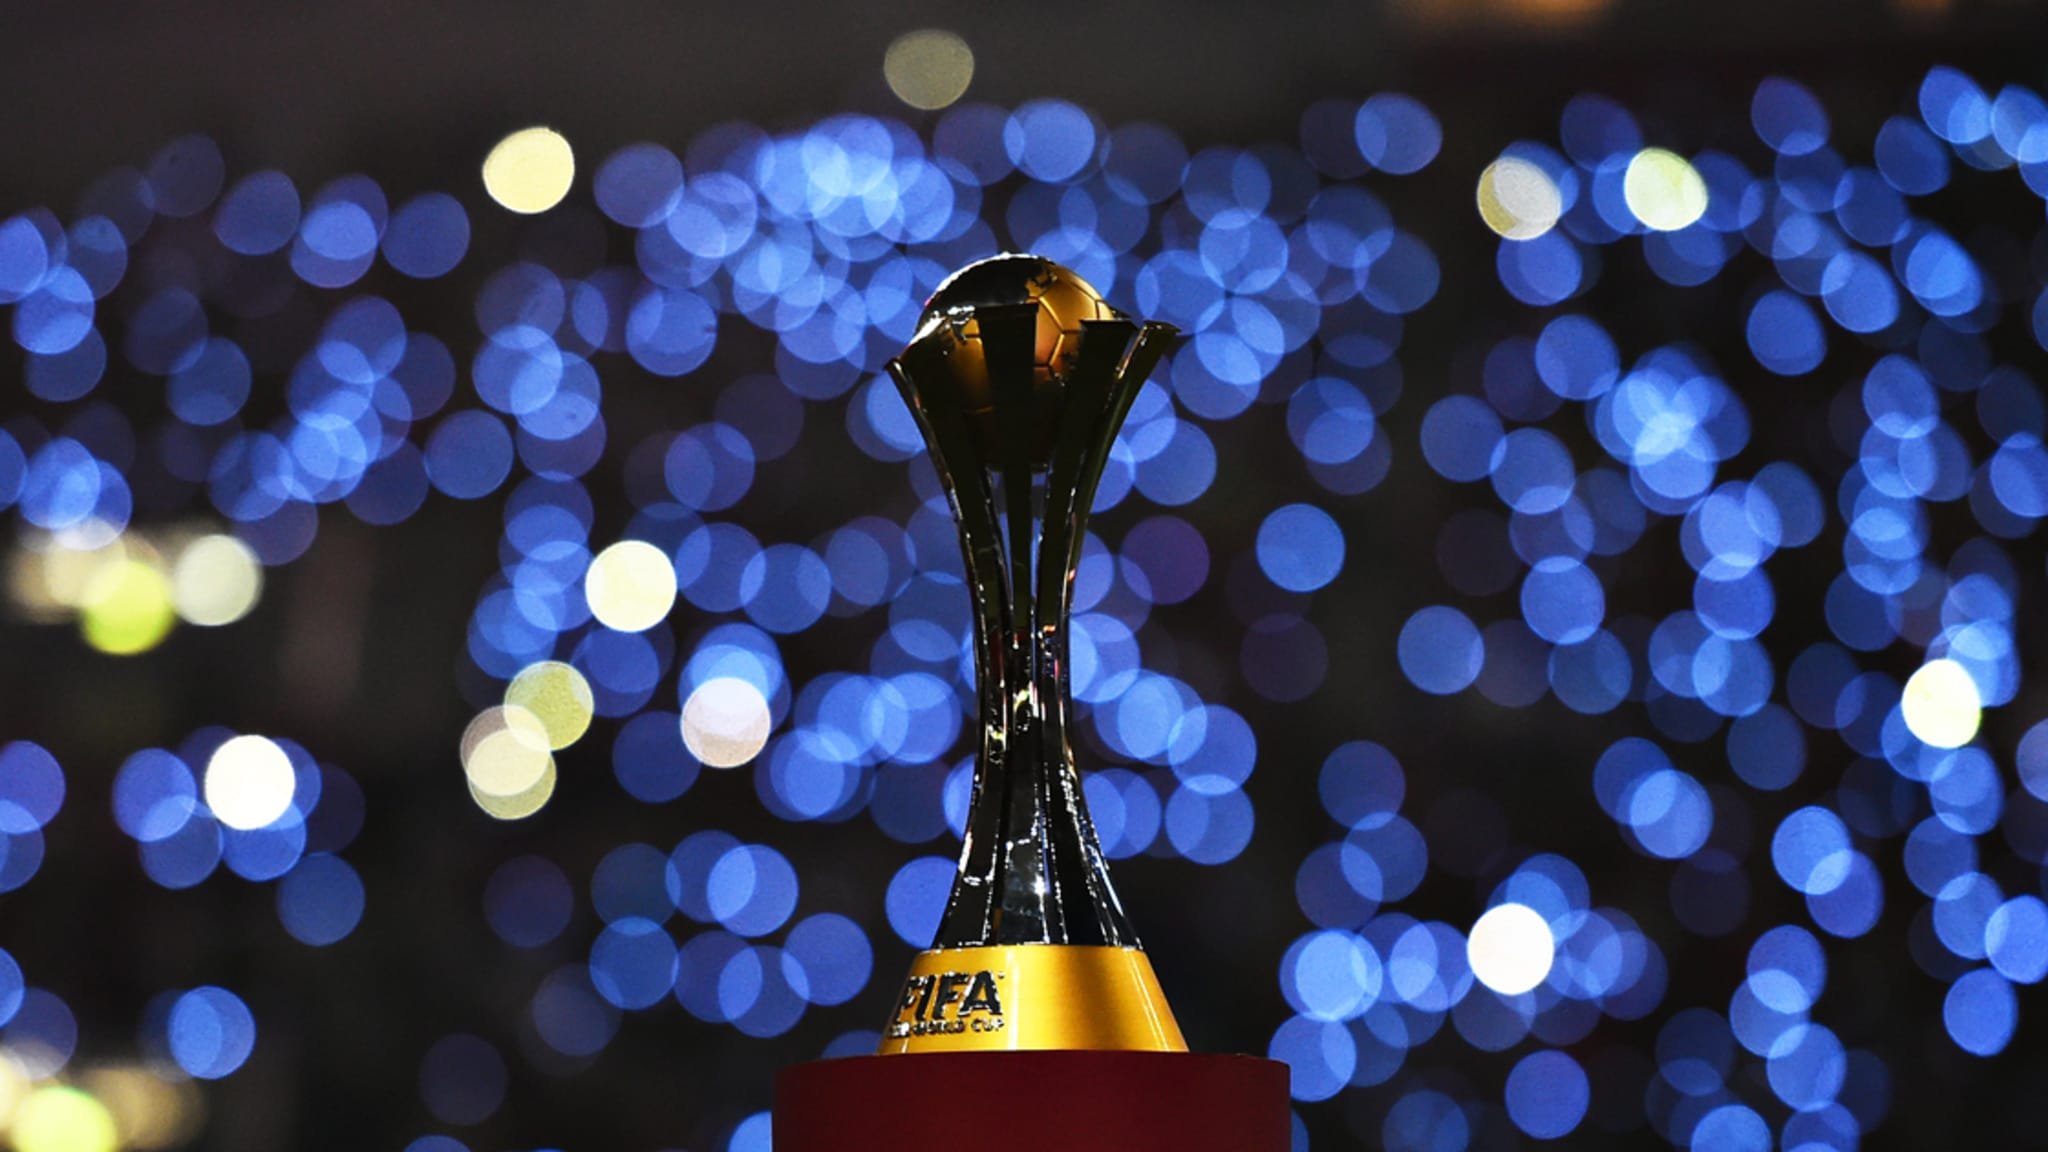 The FIFA Club World Cup trophy is pictured